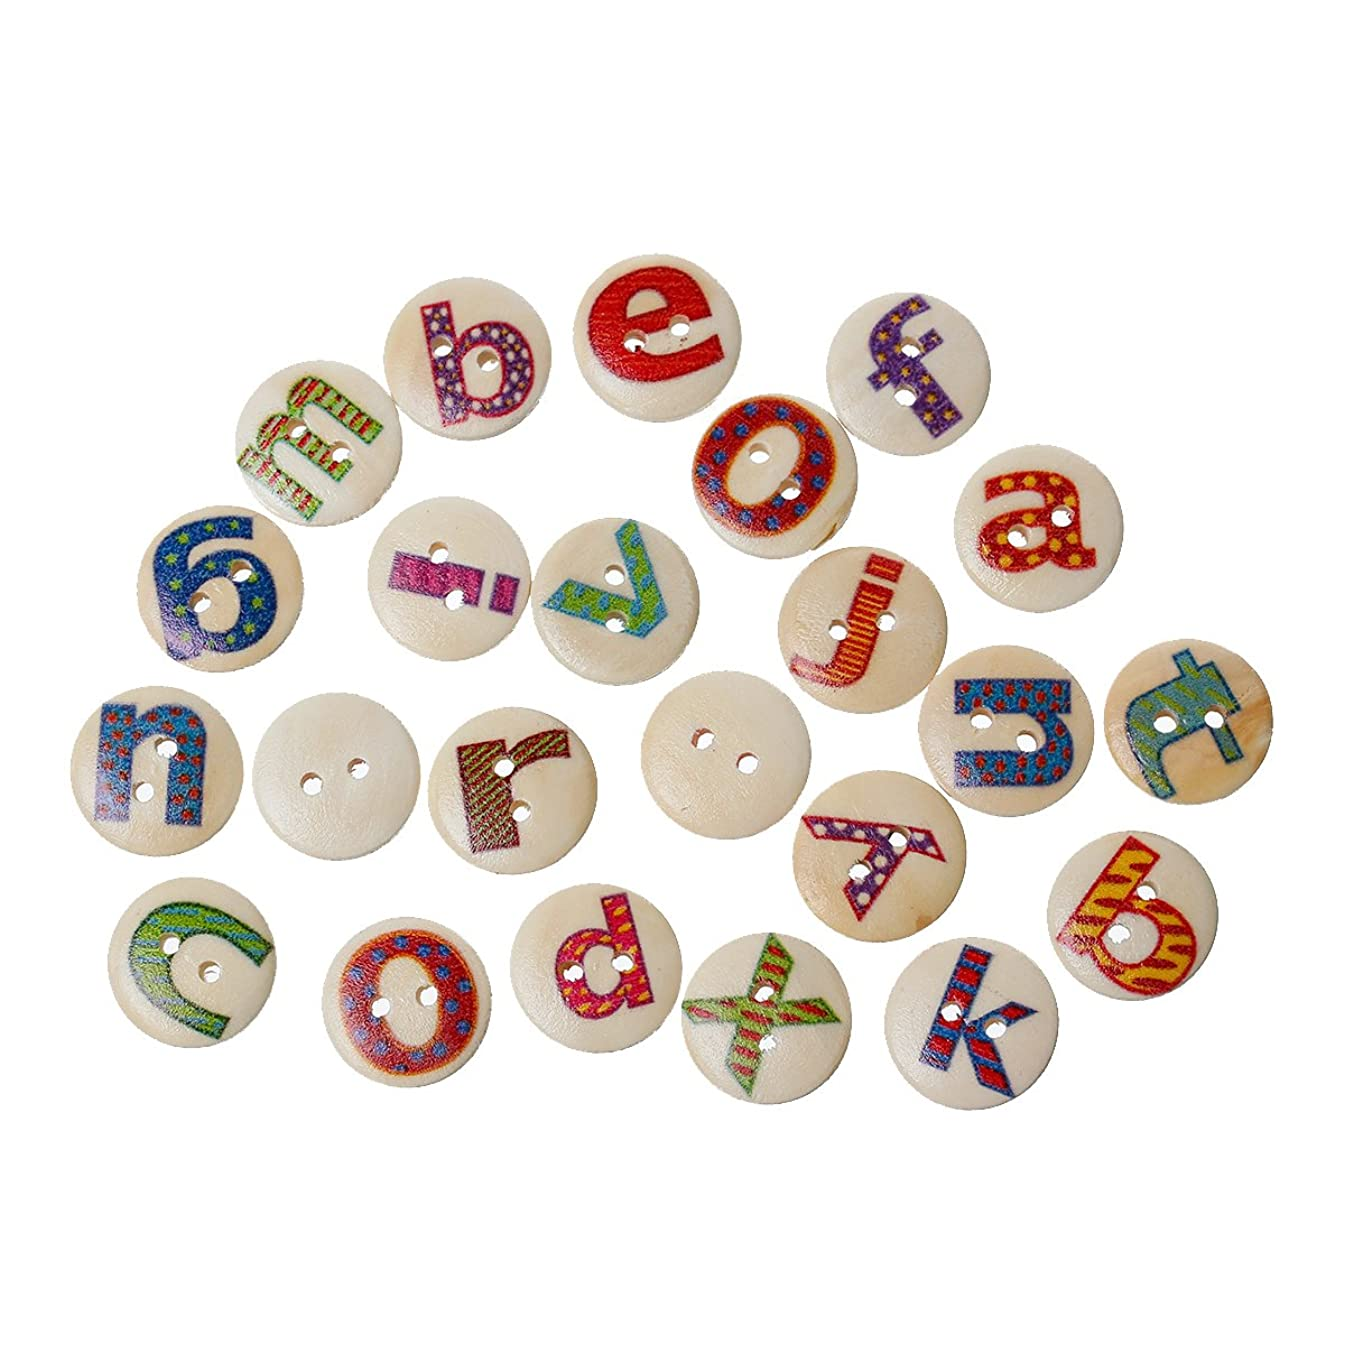 PEPPERLONELY Brand 100PC Alphabet Letters 2 Hole Scrapbooking Wood Sewing Buttons 15mm(5/8 Inch)